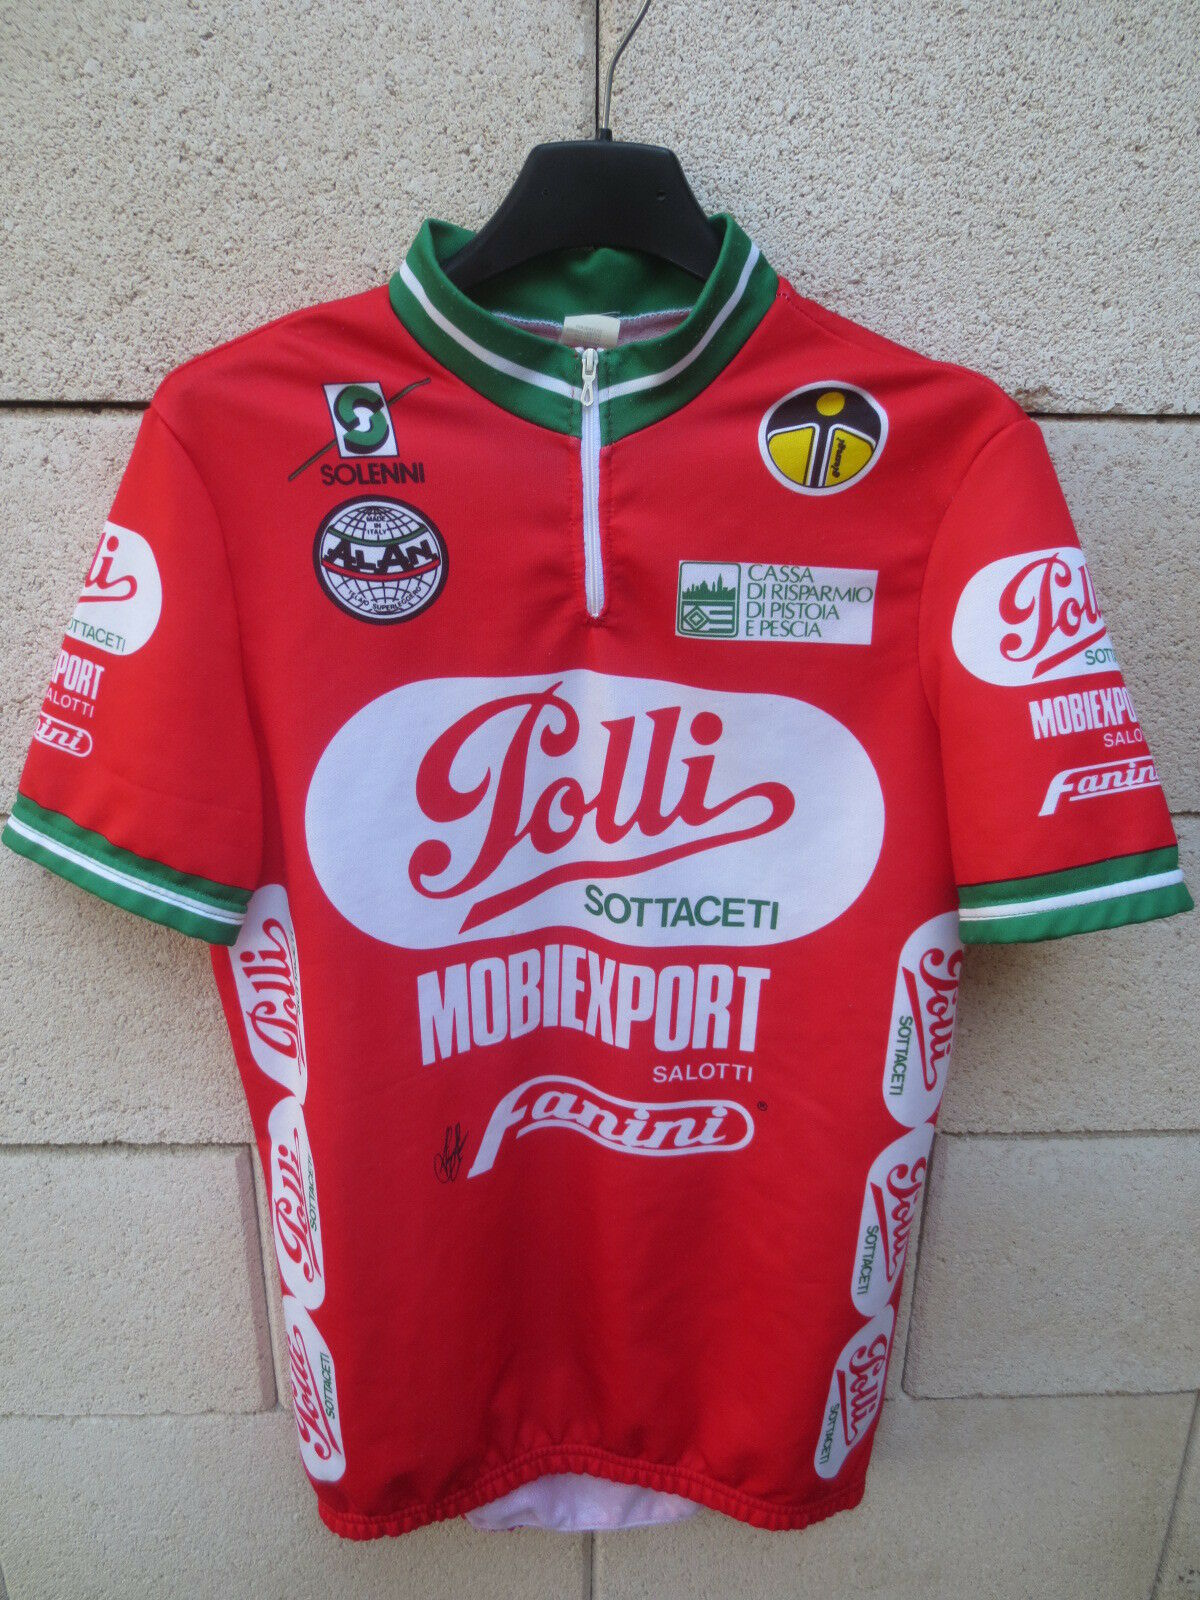 Maillot cyclist polli mobiexport 1989 vintage t shirt cycling leotard  4  comfortable